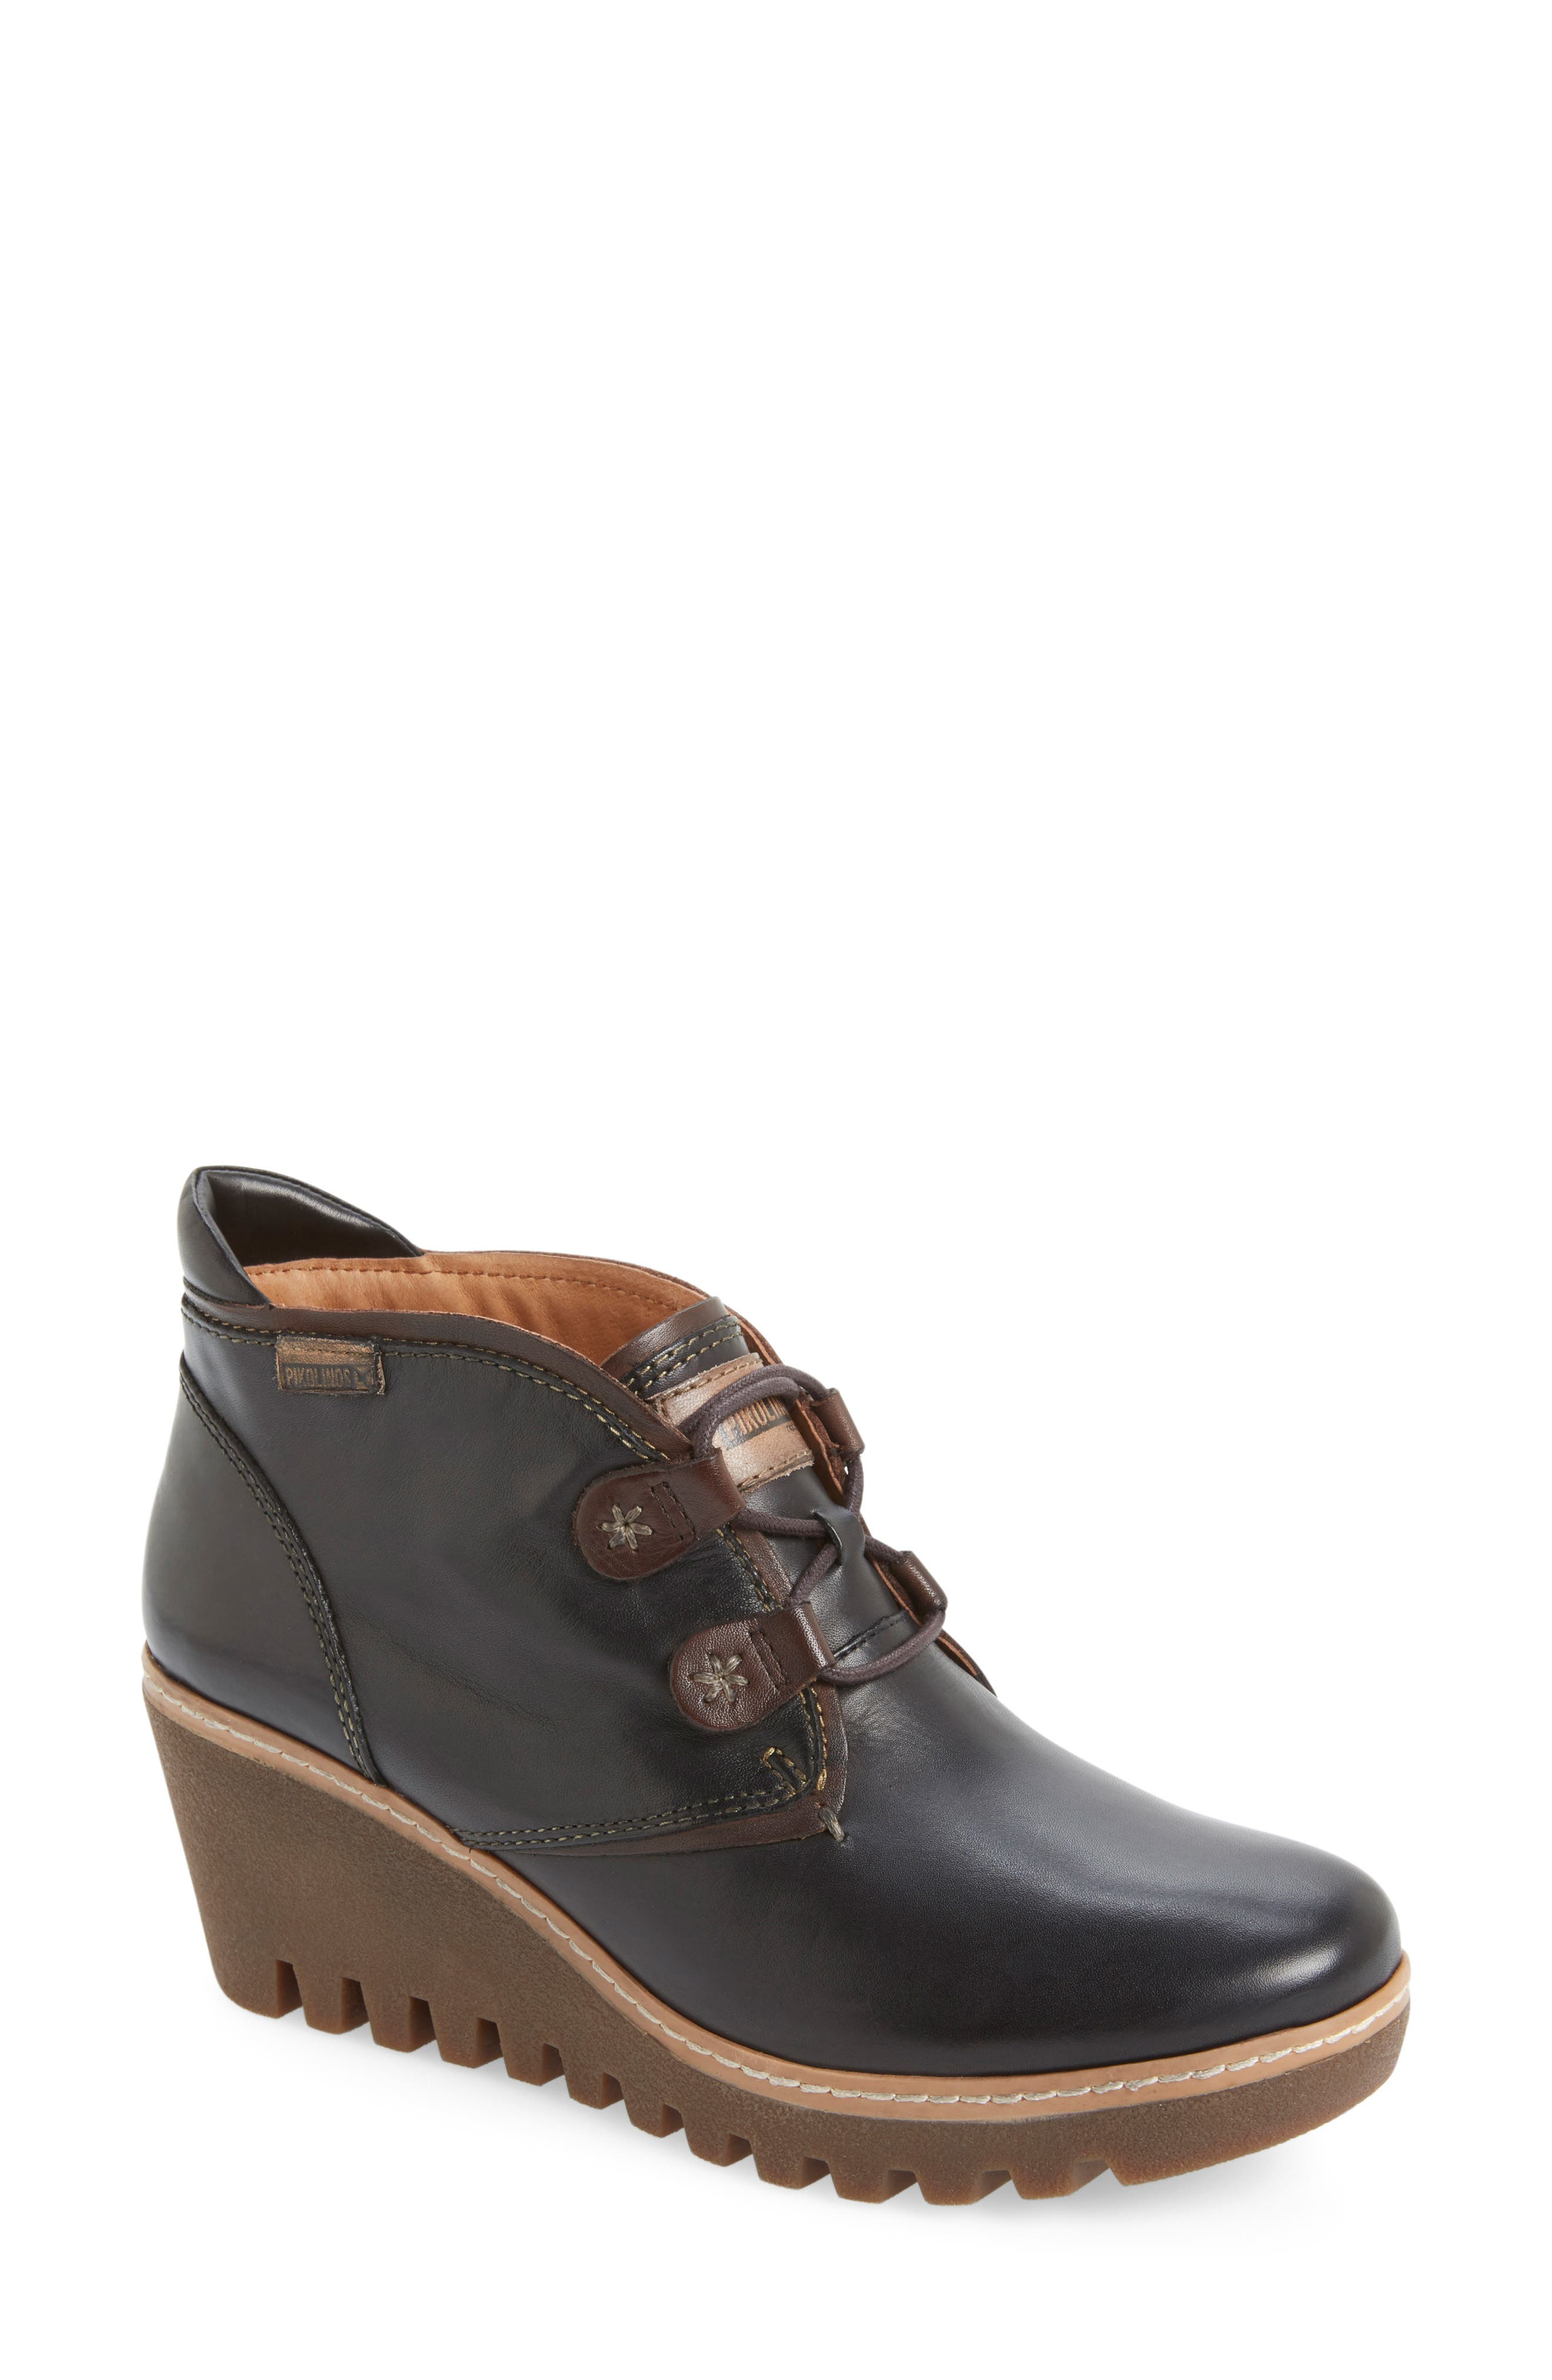 'Maple' Wedge Bootie,                             Alternate thumbnail 5, color,                             001